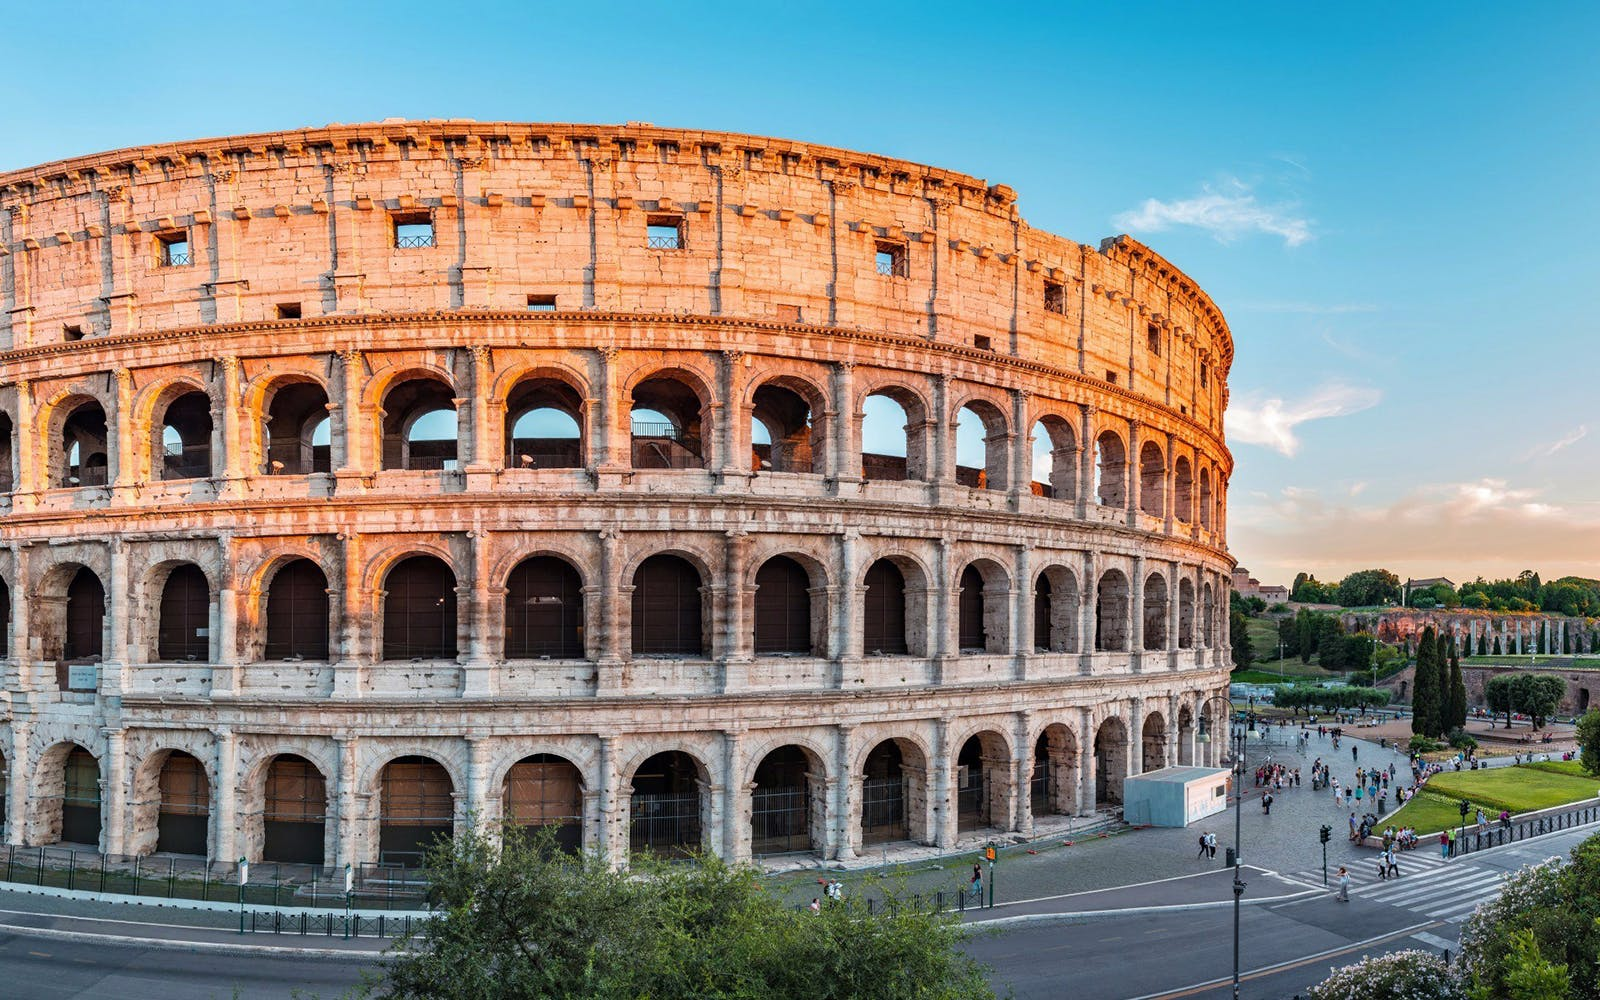 Priority Entrance Tickets With Audioguide to Colosseum, Roman Forum and Palatine Hill